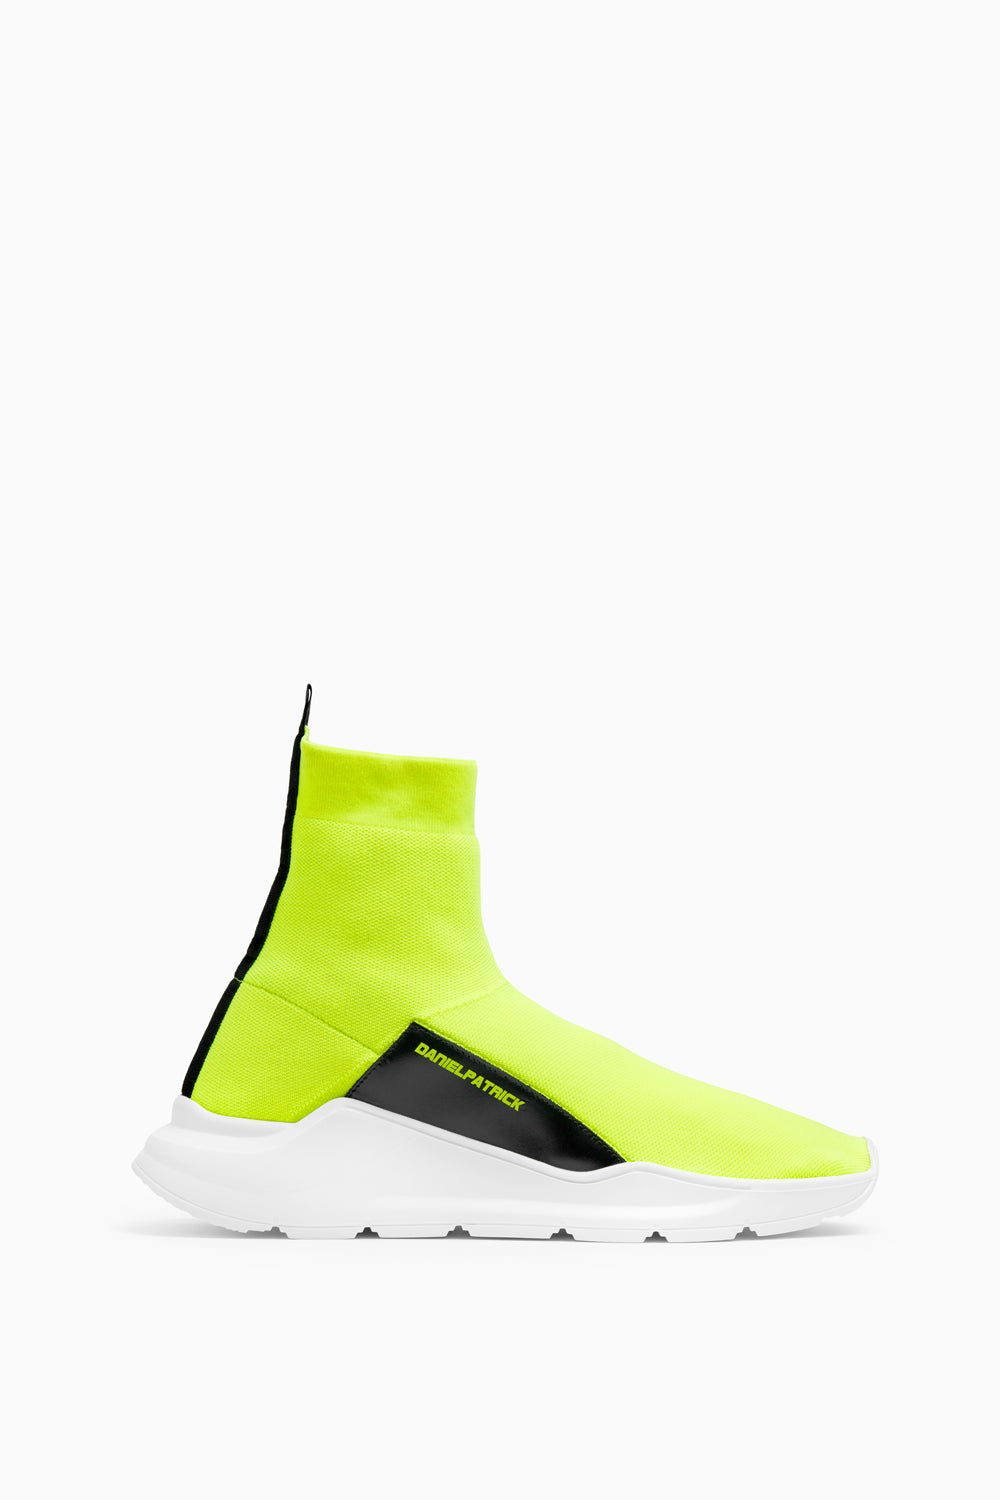 sock runner sneaker in neon yellow by daniel patrick